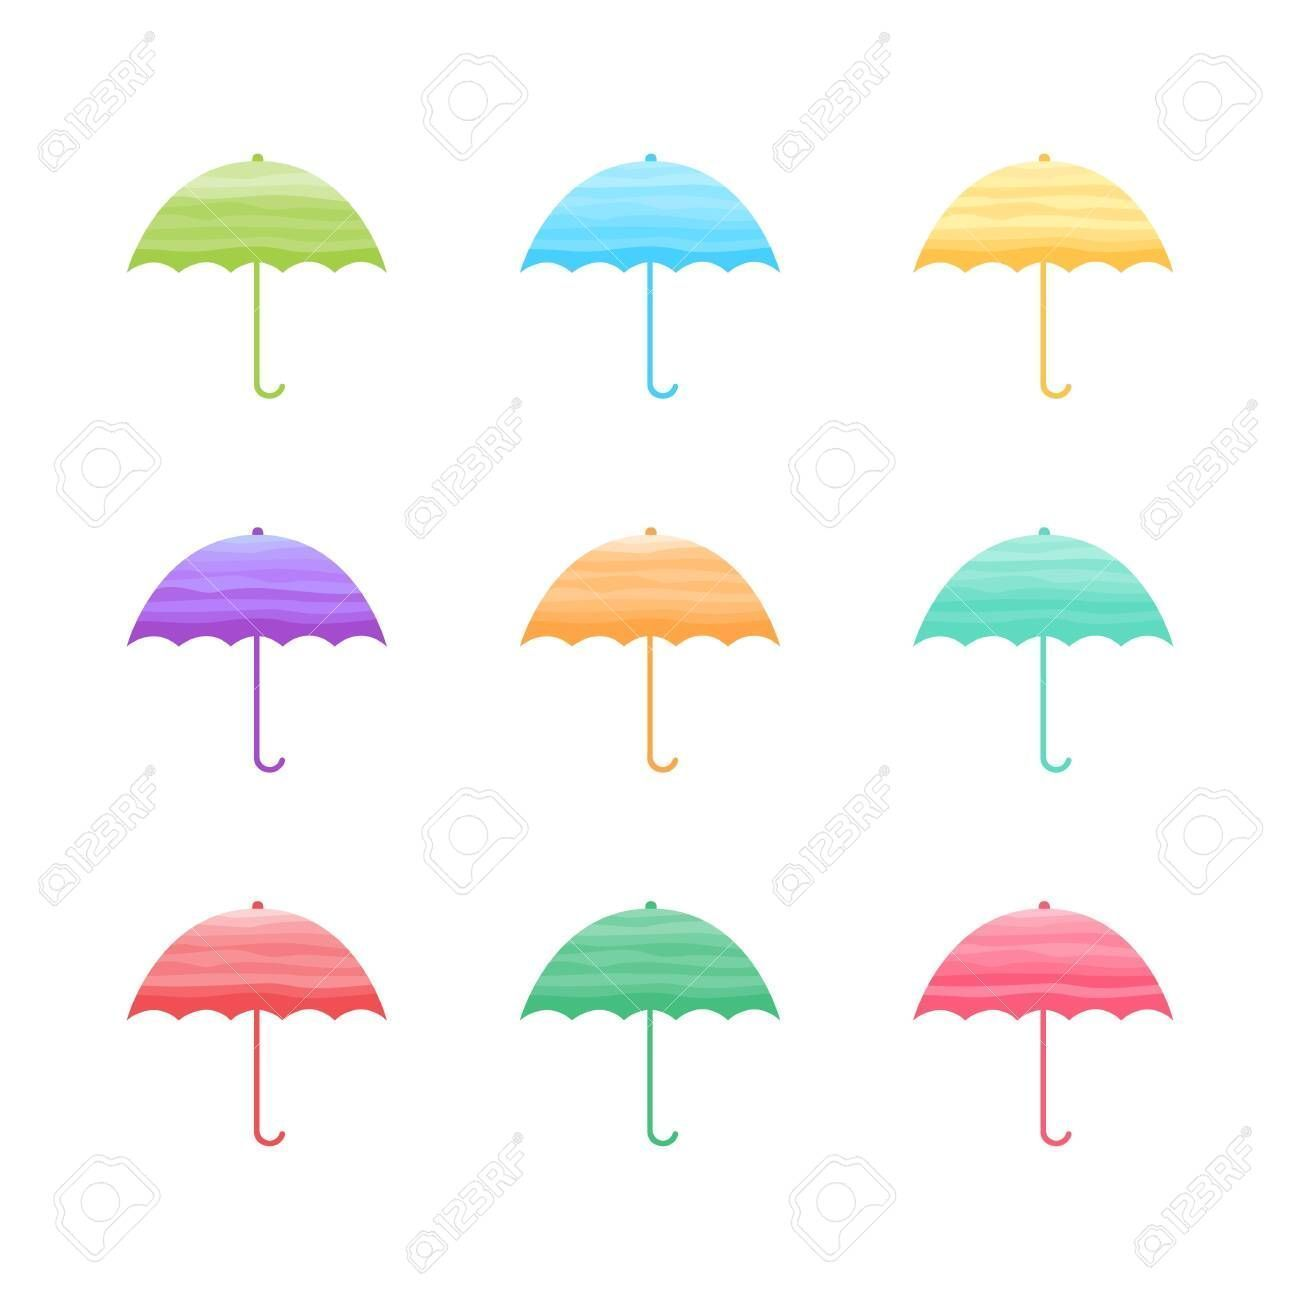 Set of cute umbrellas isolated on white background. vector illustration , #Aff, #umbrellas, #isolated, #Set, #cute, #vector #cuteumbrellas Set of cute umbrellas isolated on white background. vector illustration , #Aff, #umbrellas, #isolated, #Set, #cute, #vector #cuteumbrellas Set of cute umbrellas isolated on white background. vector illustration , #Aff, #umbrellas, #isolated, #Set, #cute, #vector #cuteumbrellas Set of cute umbrellas isolated on white background. vector illustration , #Aff, #um #cuteumbrellas